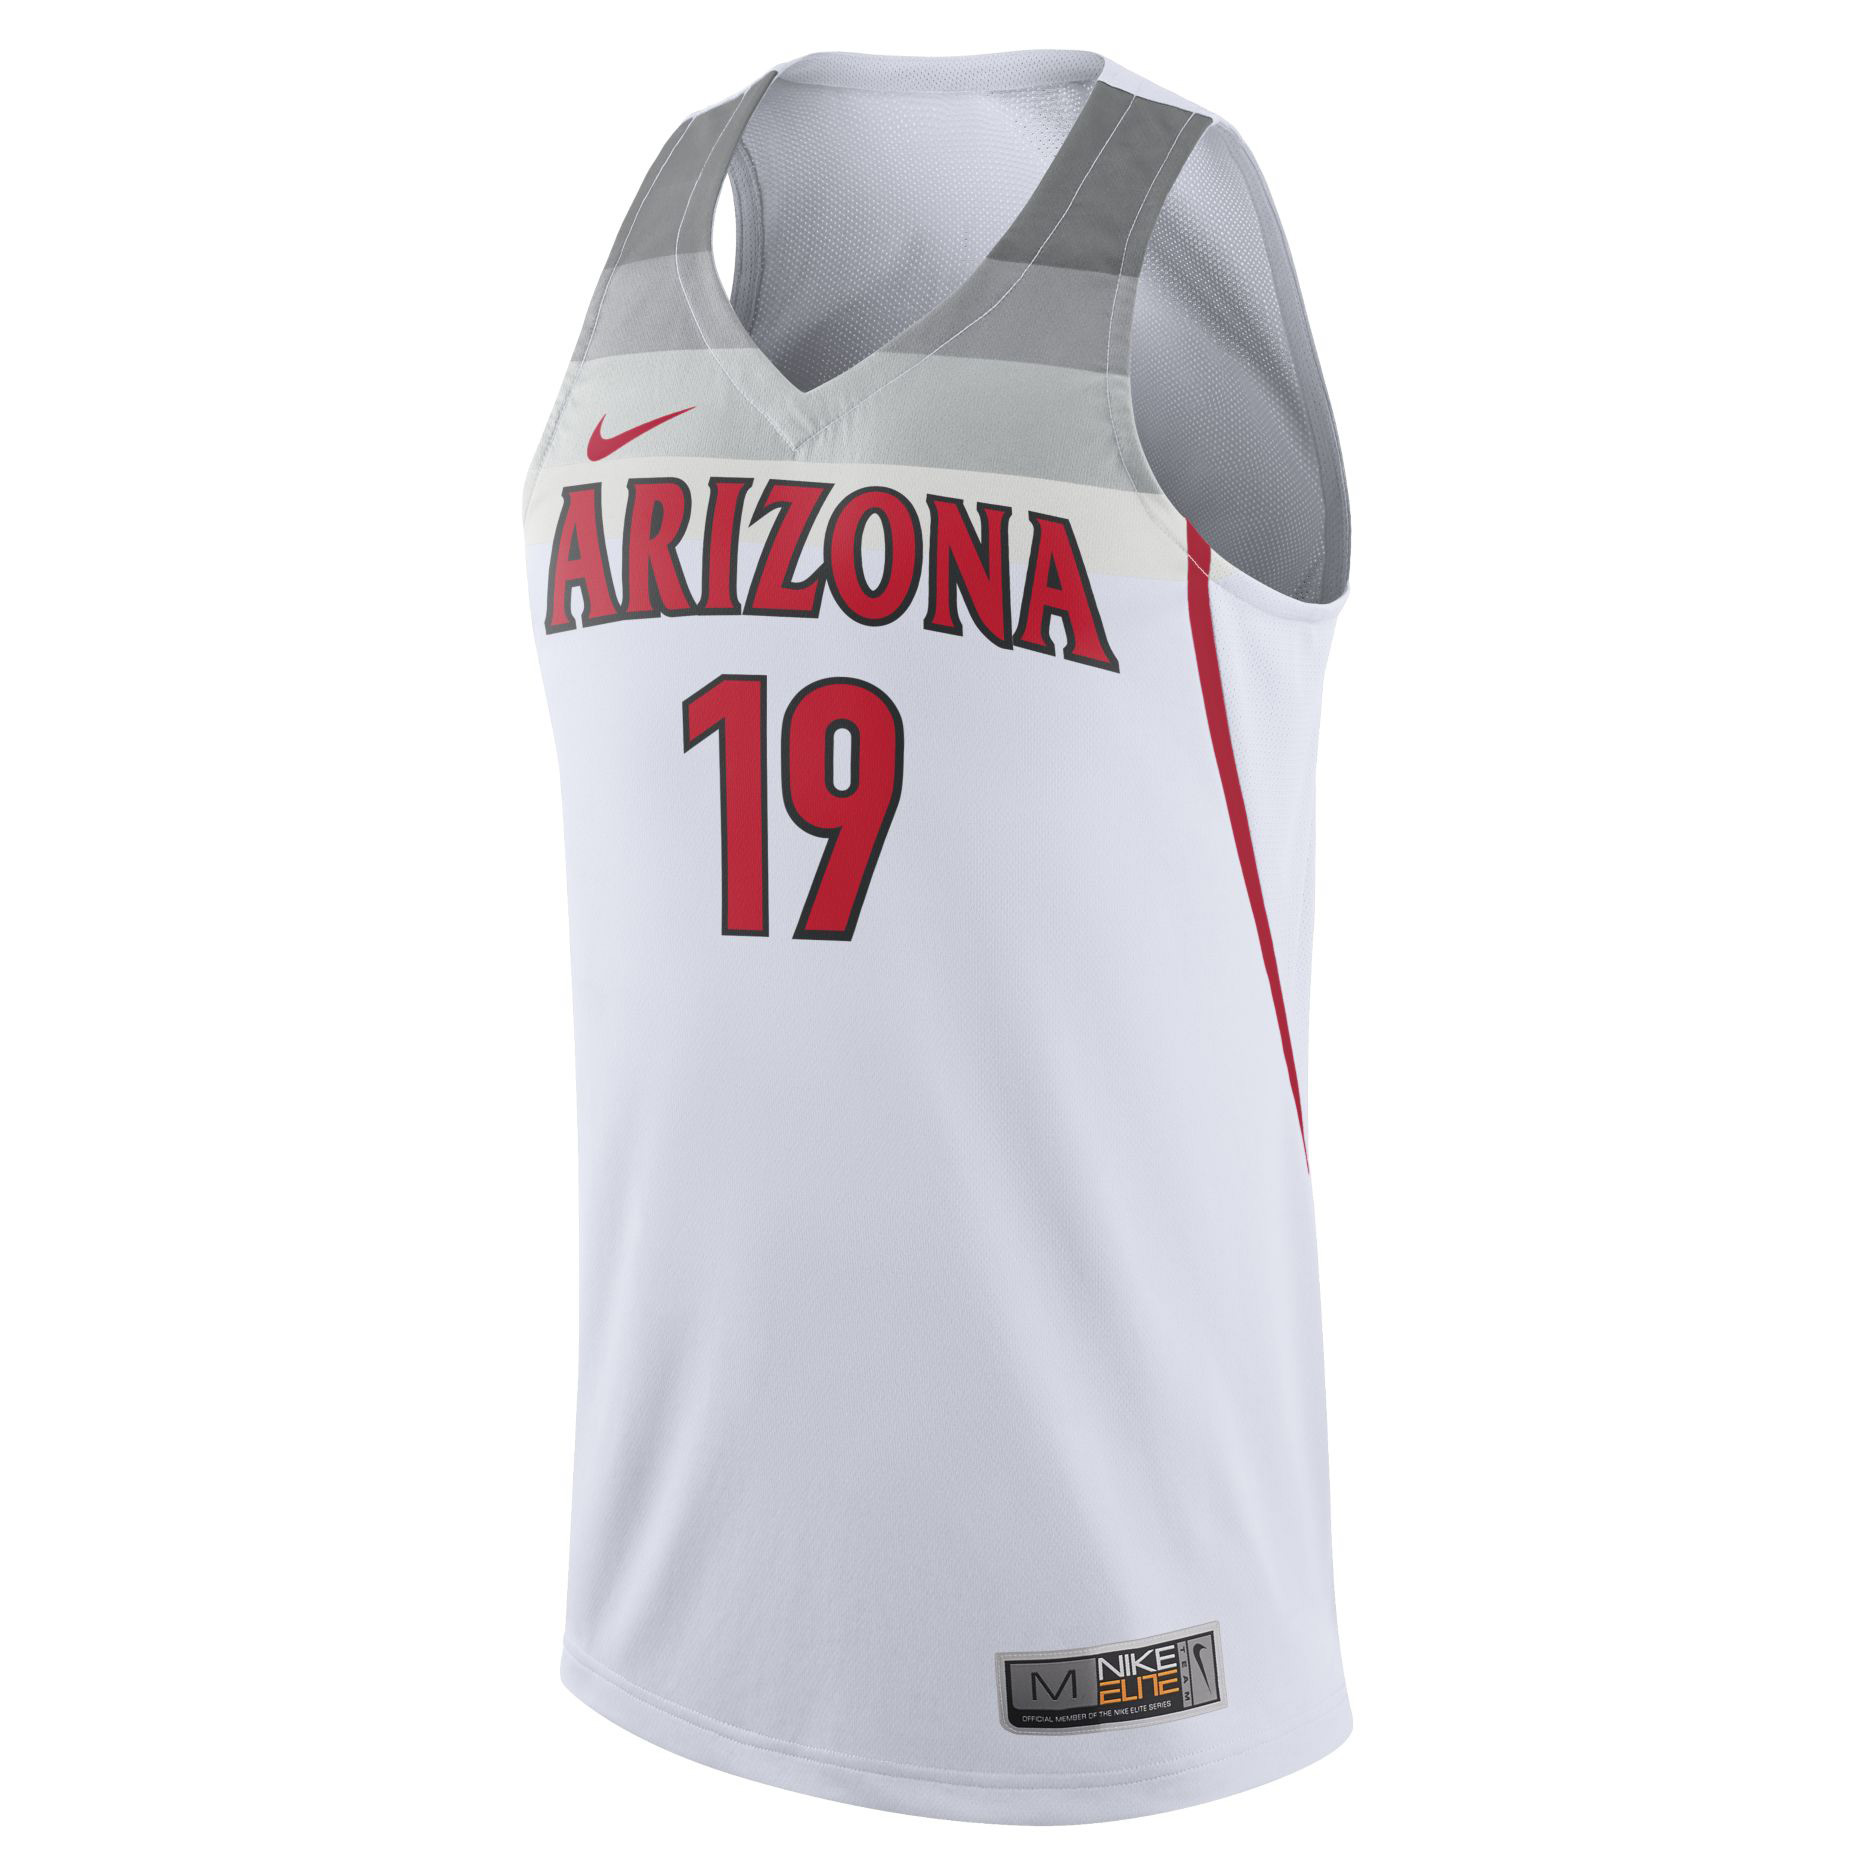 2019 Arizona Wildcats Basketball Replica Jersey - White 24849abe2